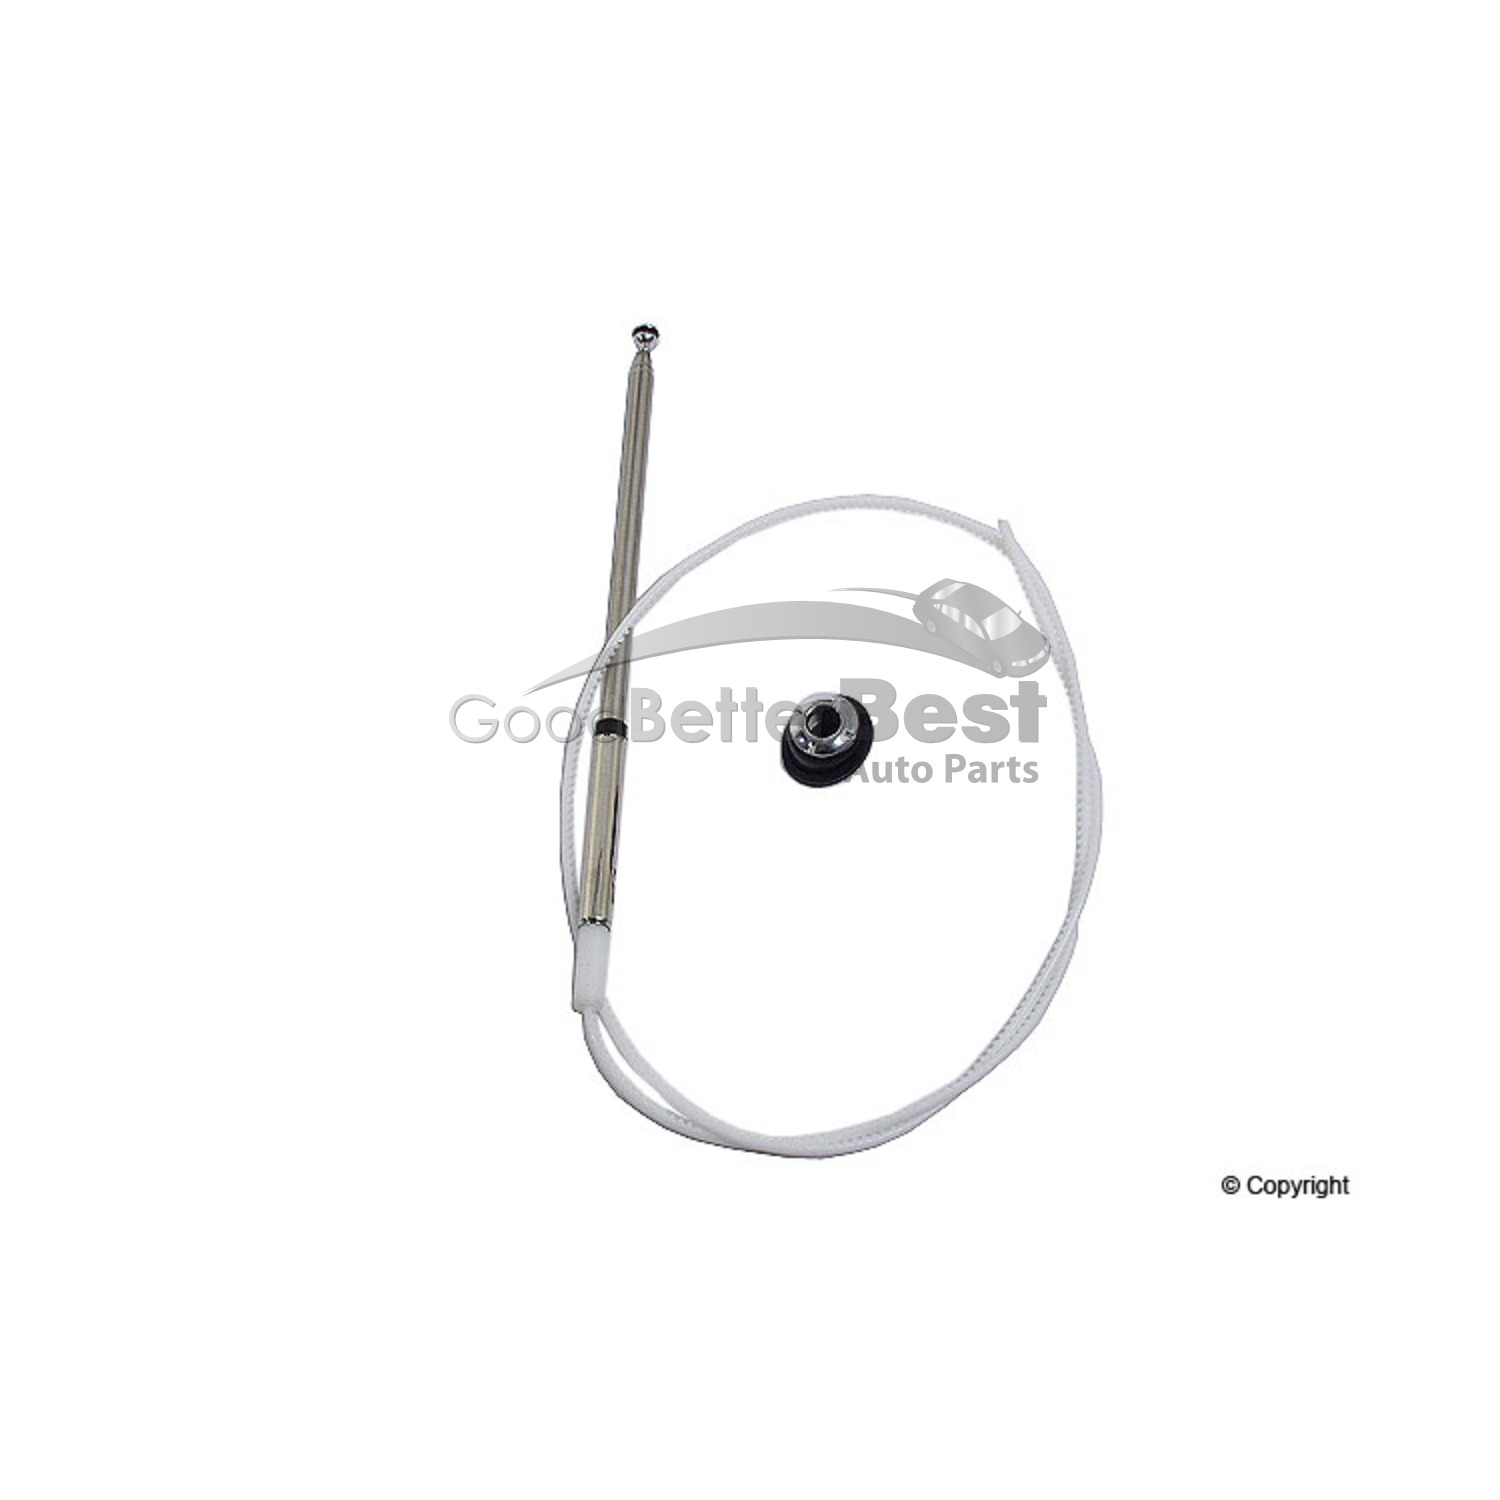 One New Mtc Antenna Mast Sm For Honda